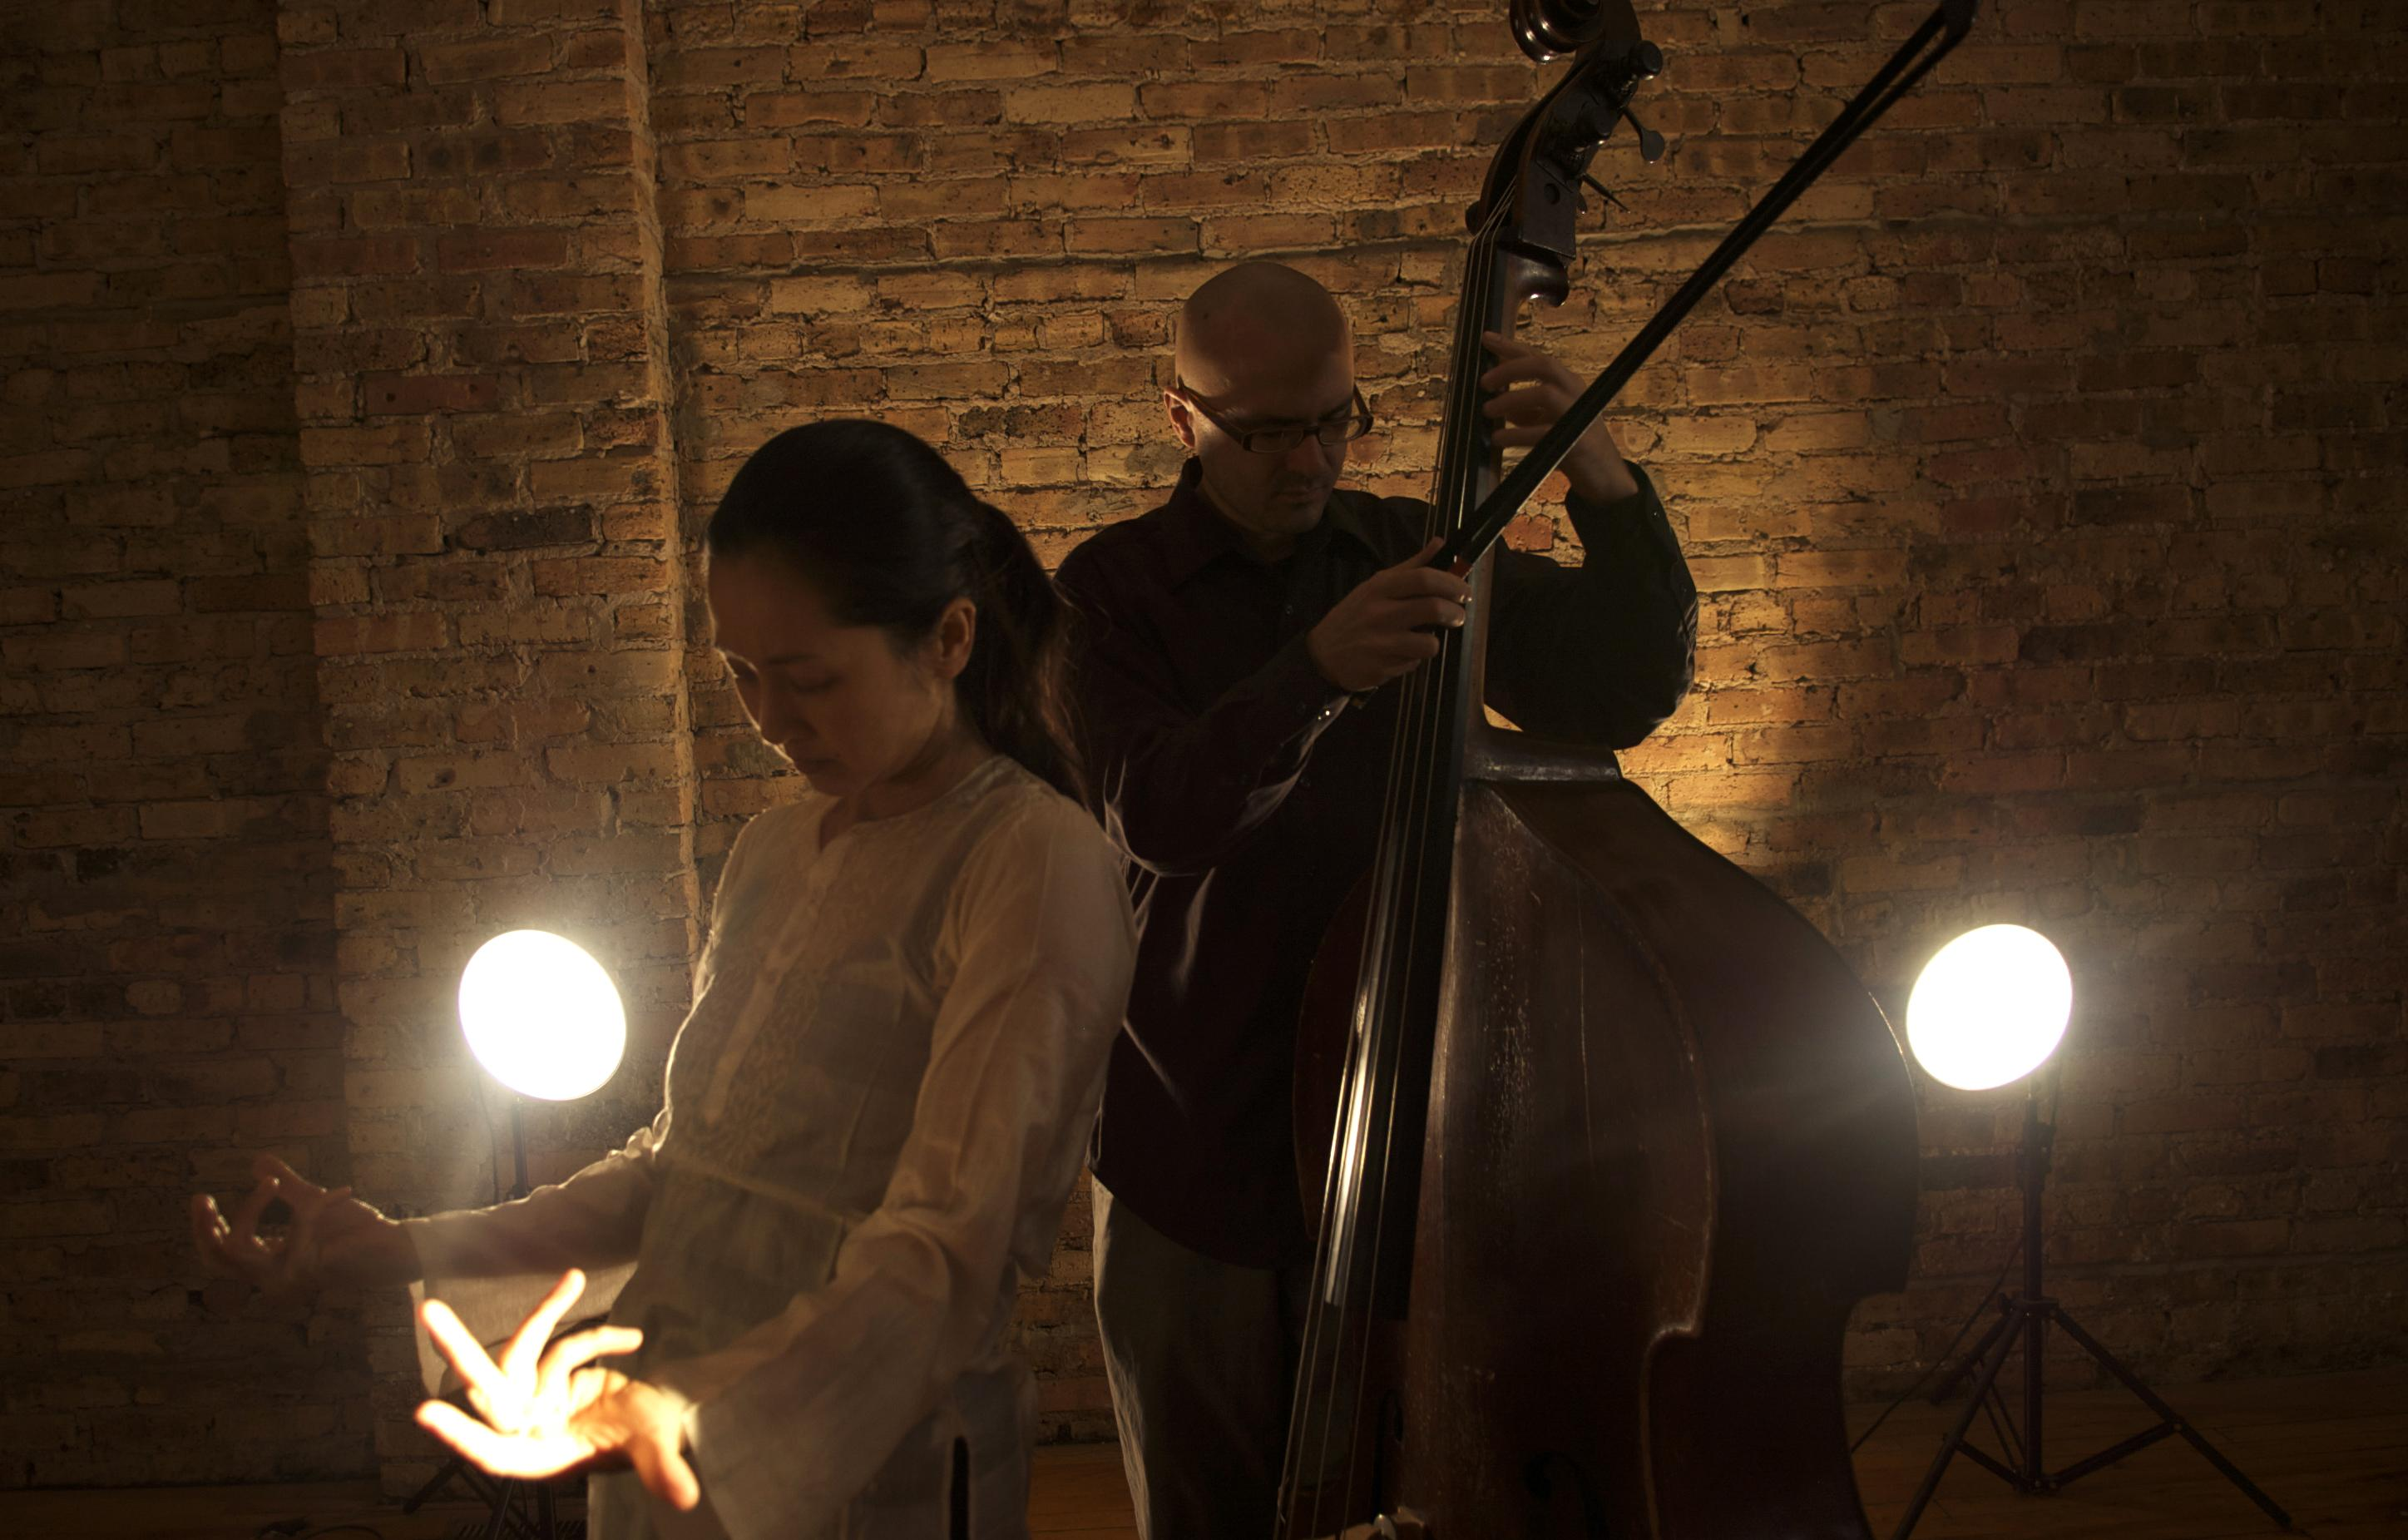 A woman and man in a dark room are backlit by two spotlights. He plays a string bass while she gestures with both arms, empty handed and fingers curled.